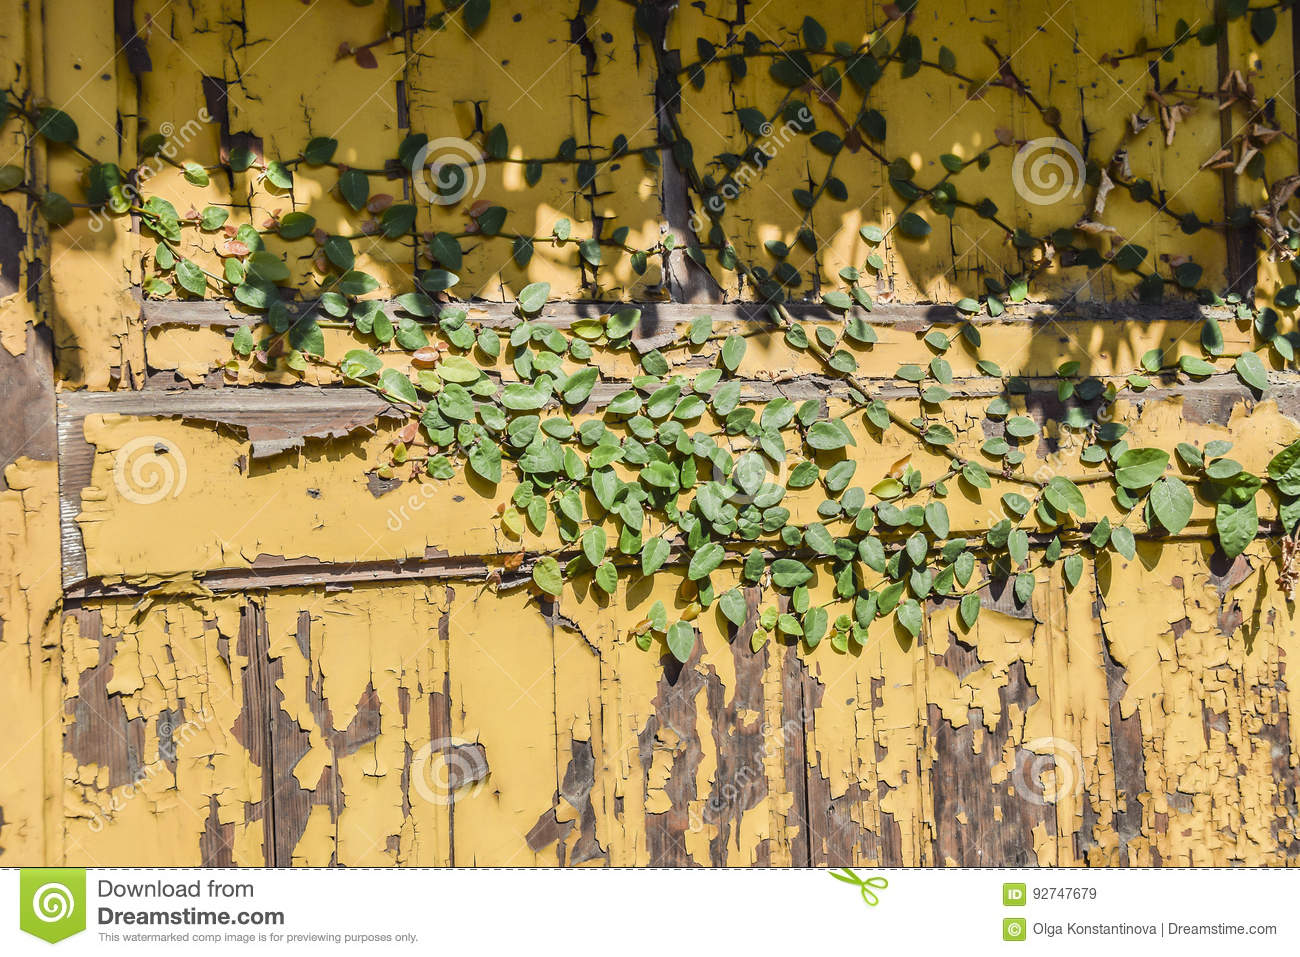 Green ivy on a yellow wall